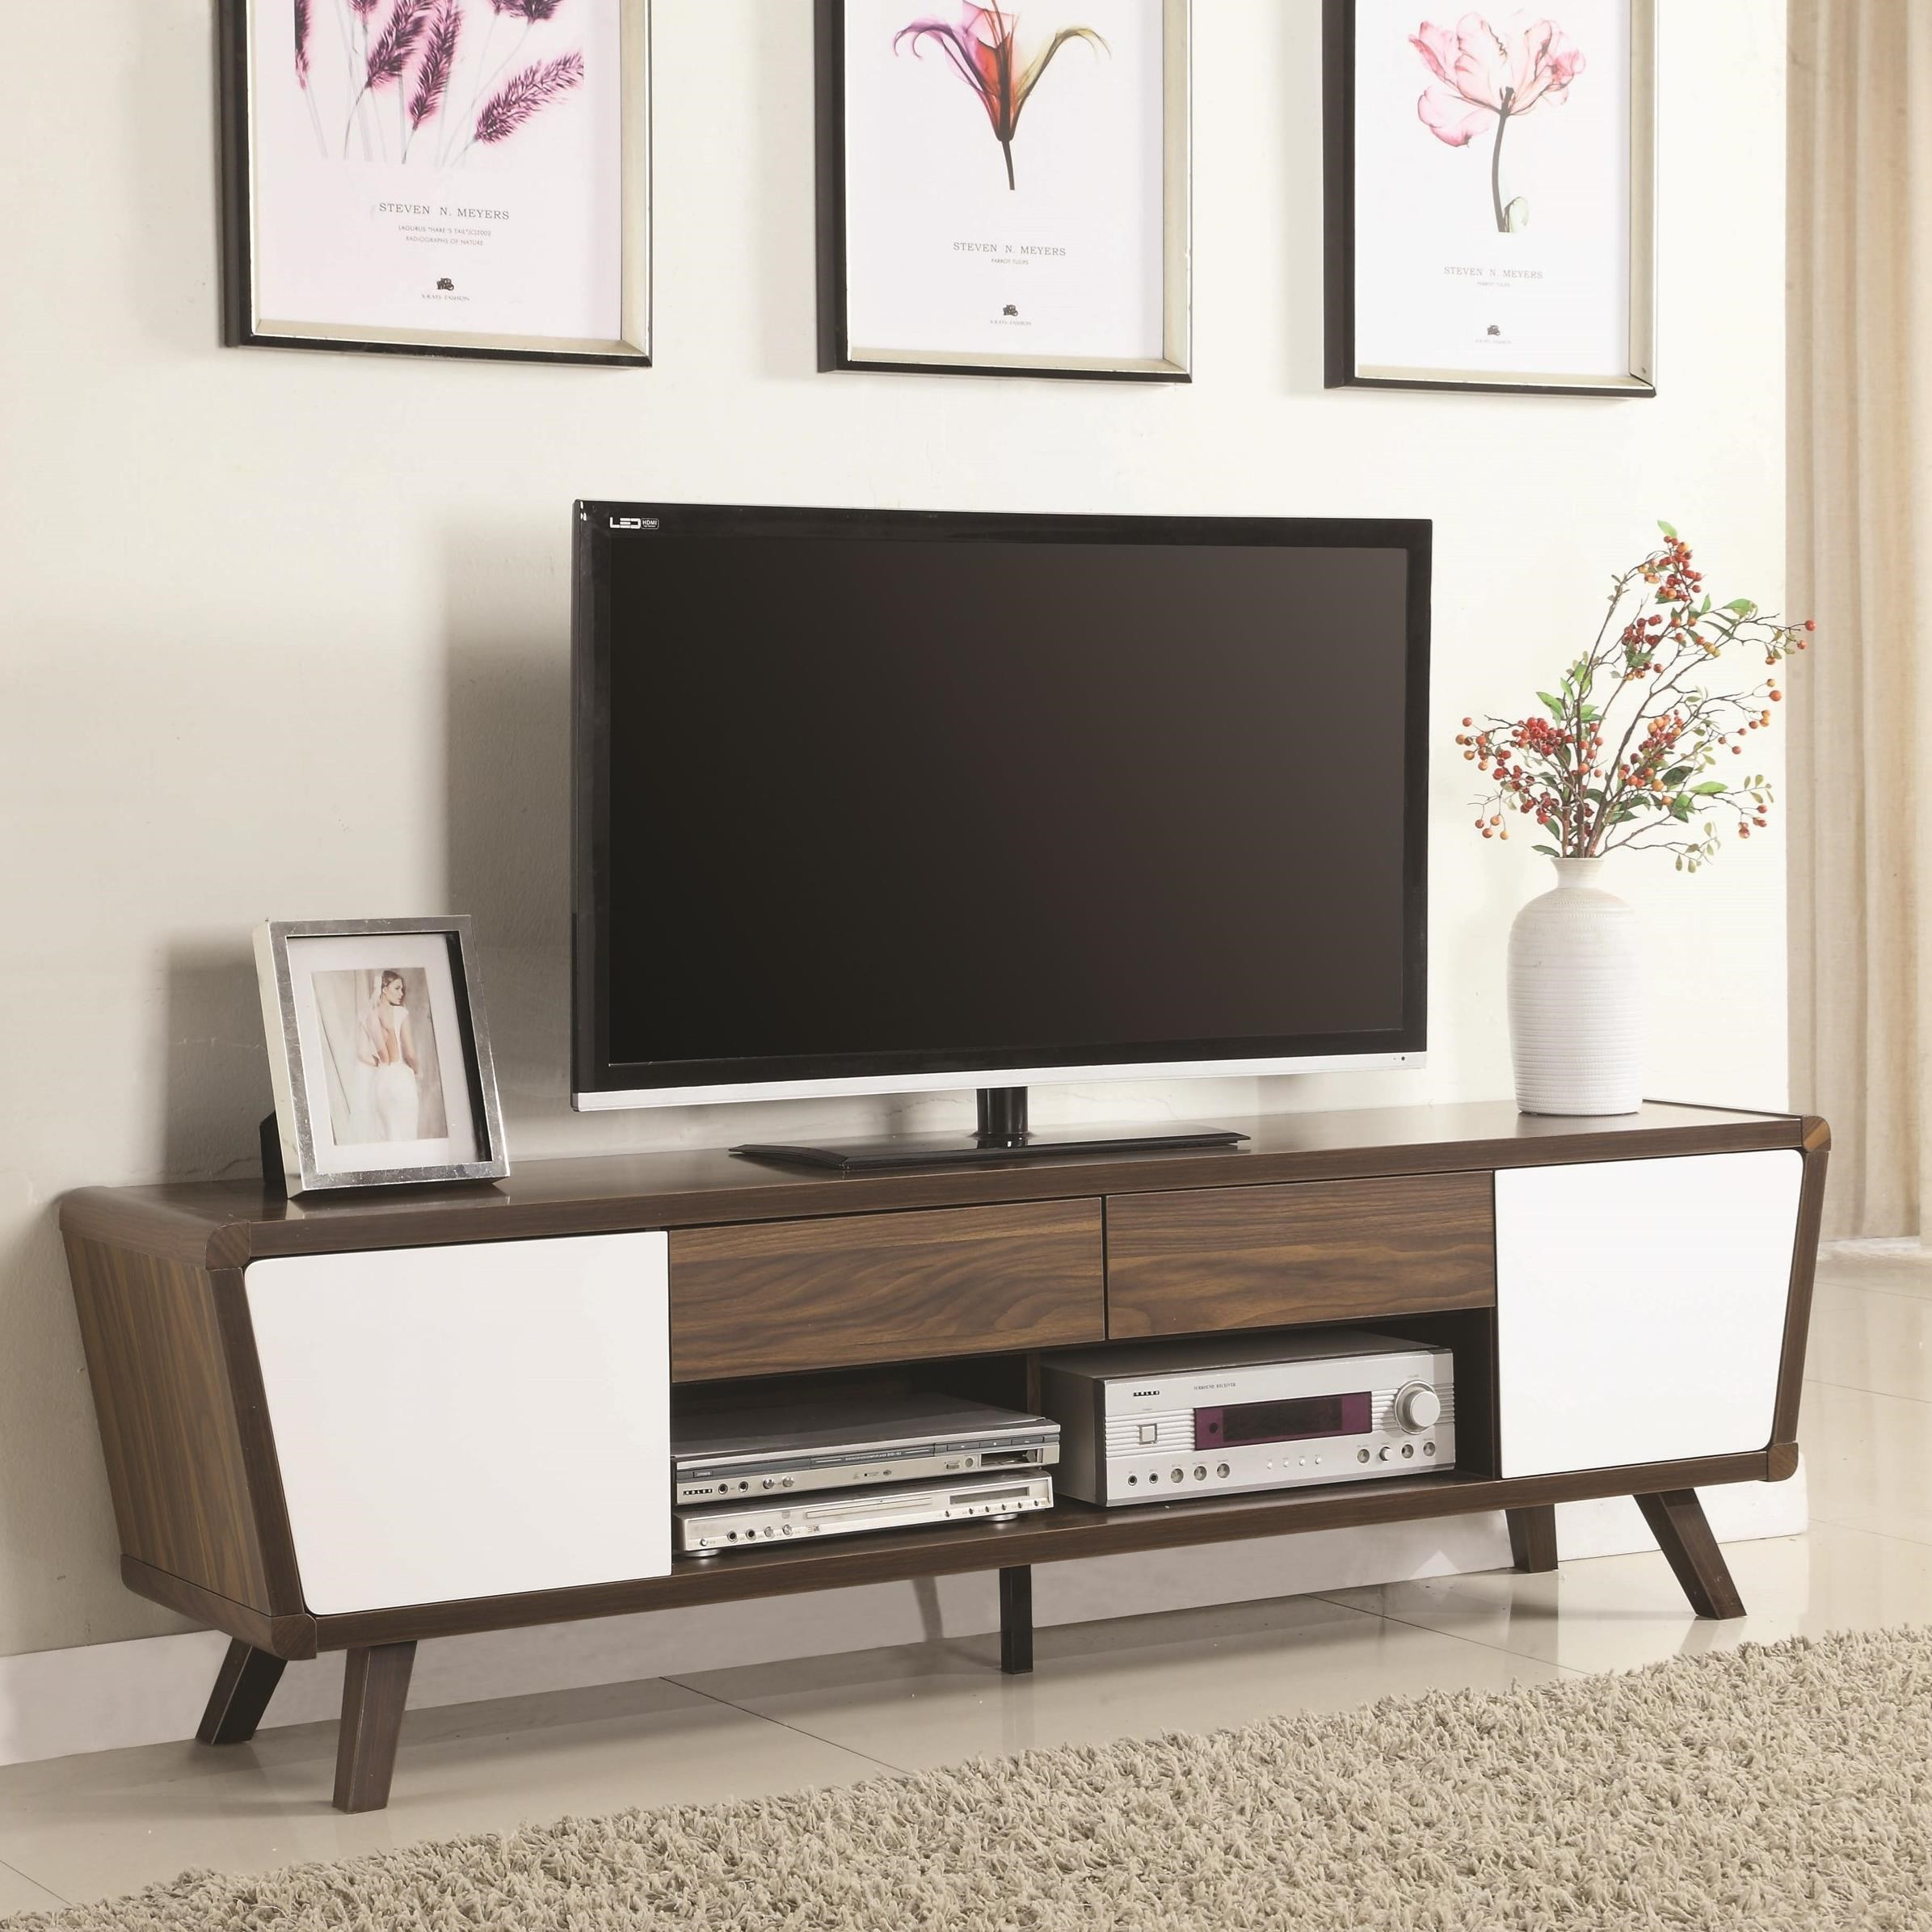 Delicieux Entertainment Units Two Tone Mid Century Modern TV Console By Coaster